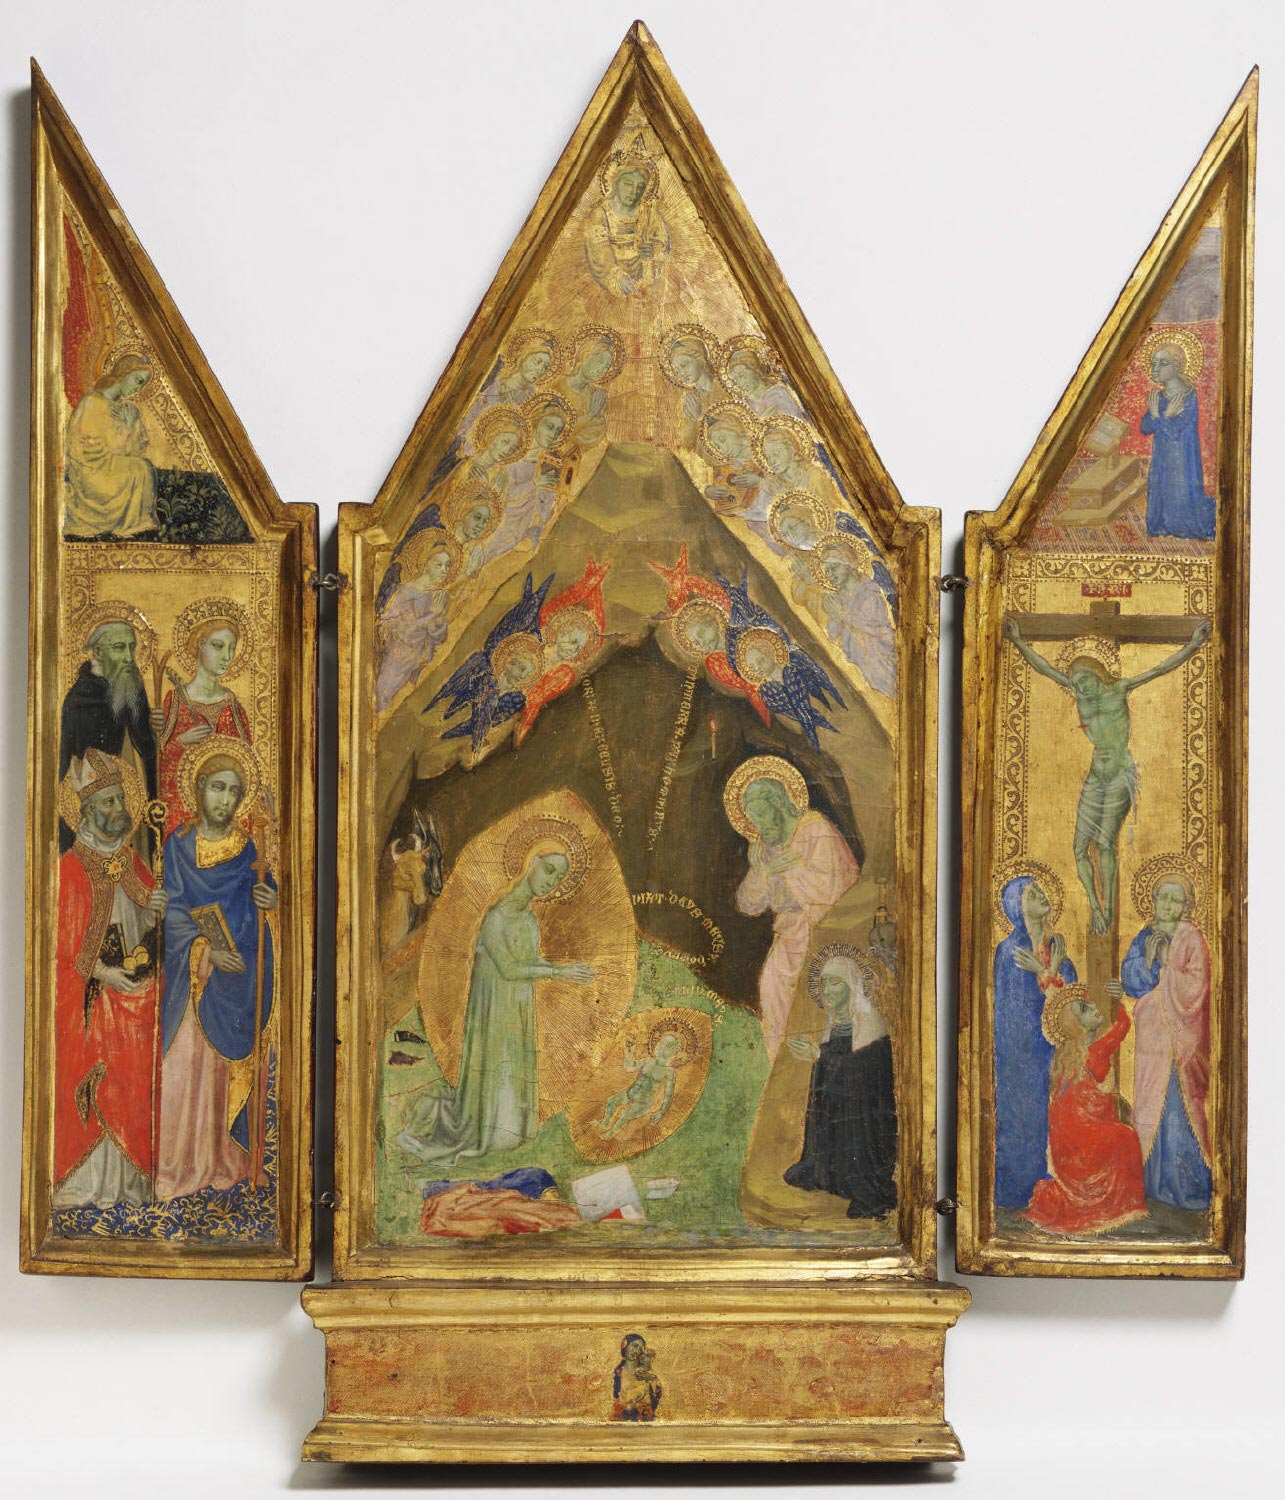 Saint Bridget's Vision of the Nativity [center]; Virgin and Child [base]; Annunciate Angel and Saints Anthony Abbot, Catherine of Alexandria, Nicholas of Bari, and James Major [left wing]; Virgin Annunciate and the Crucifixion [right wing]